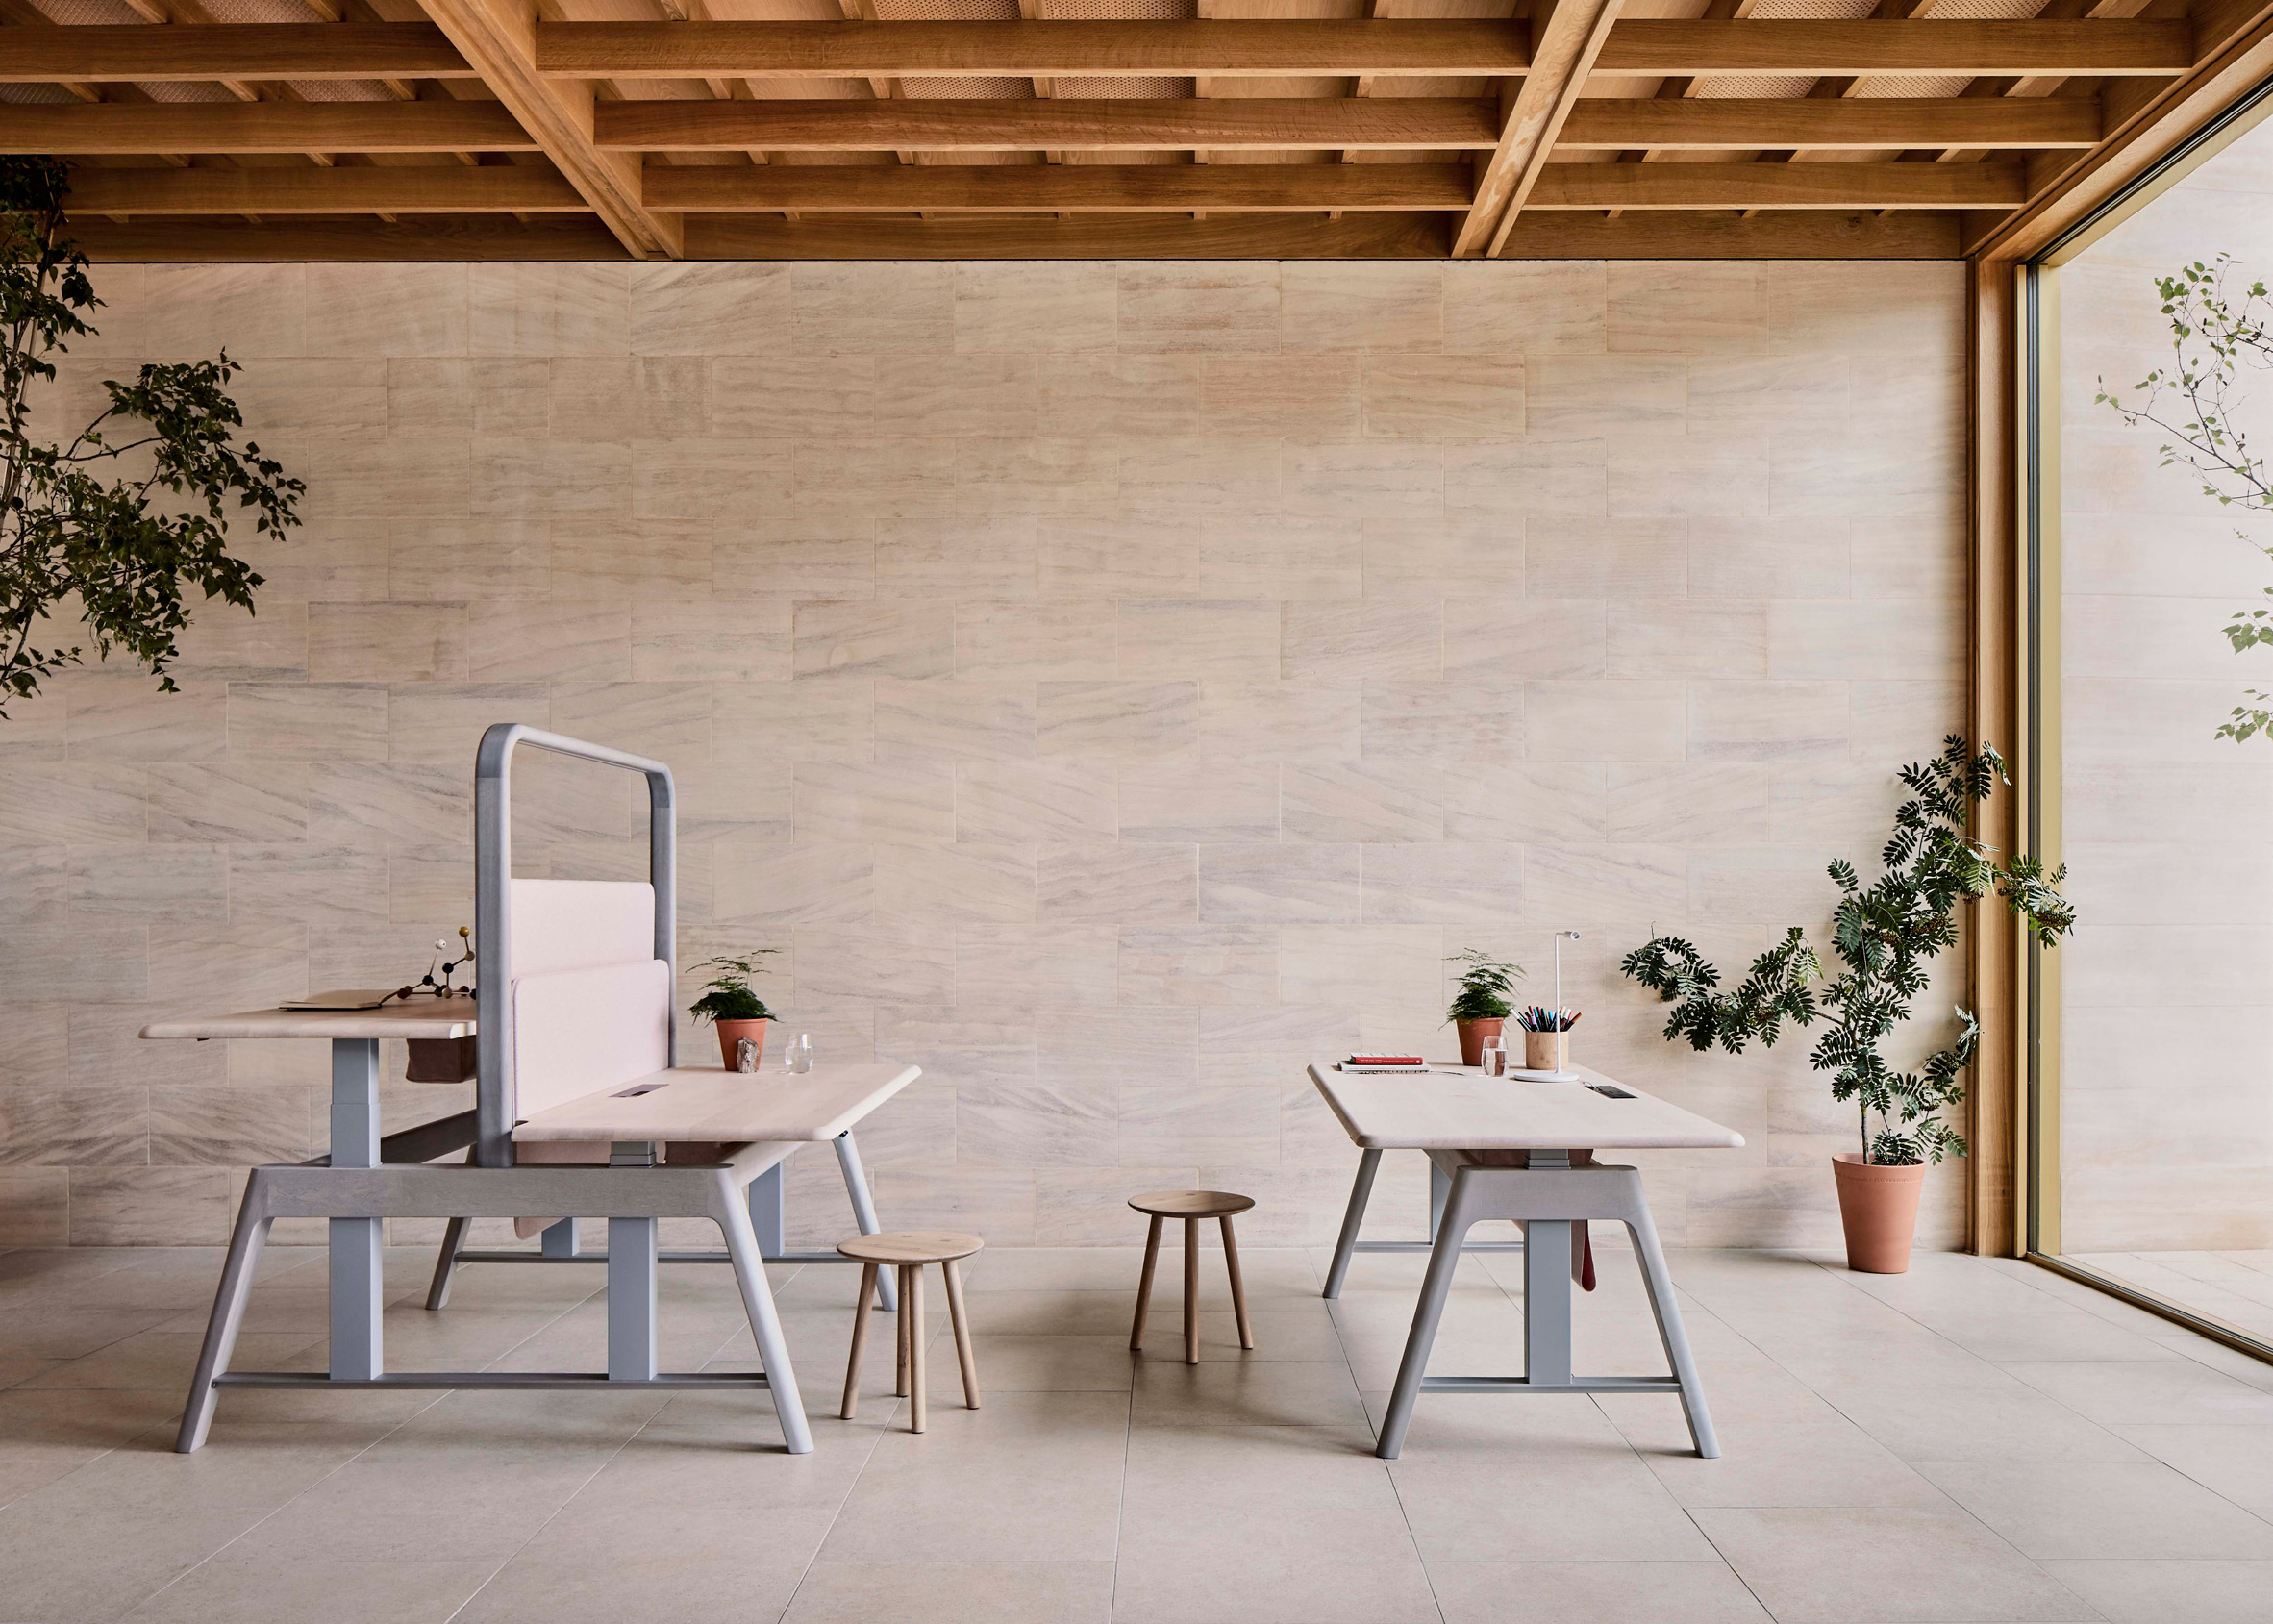 Desks from the Sage collection by Benchmark